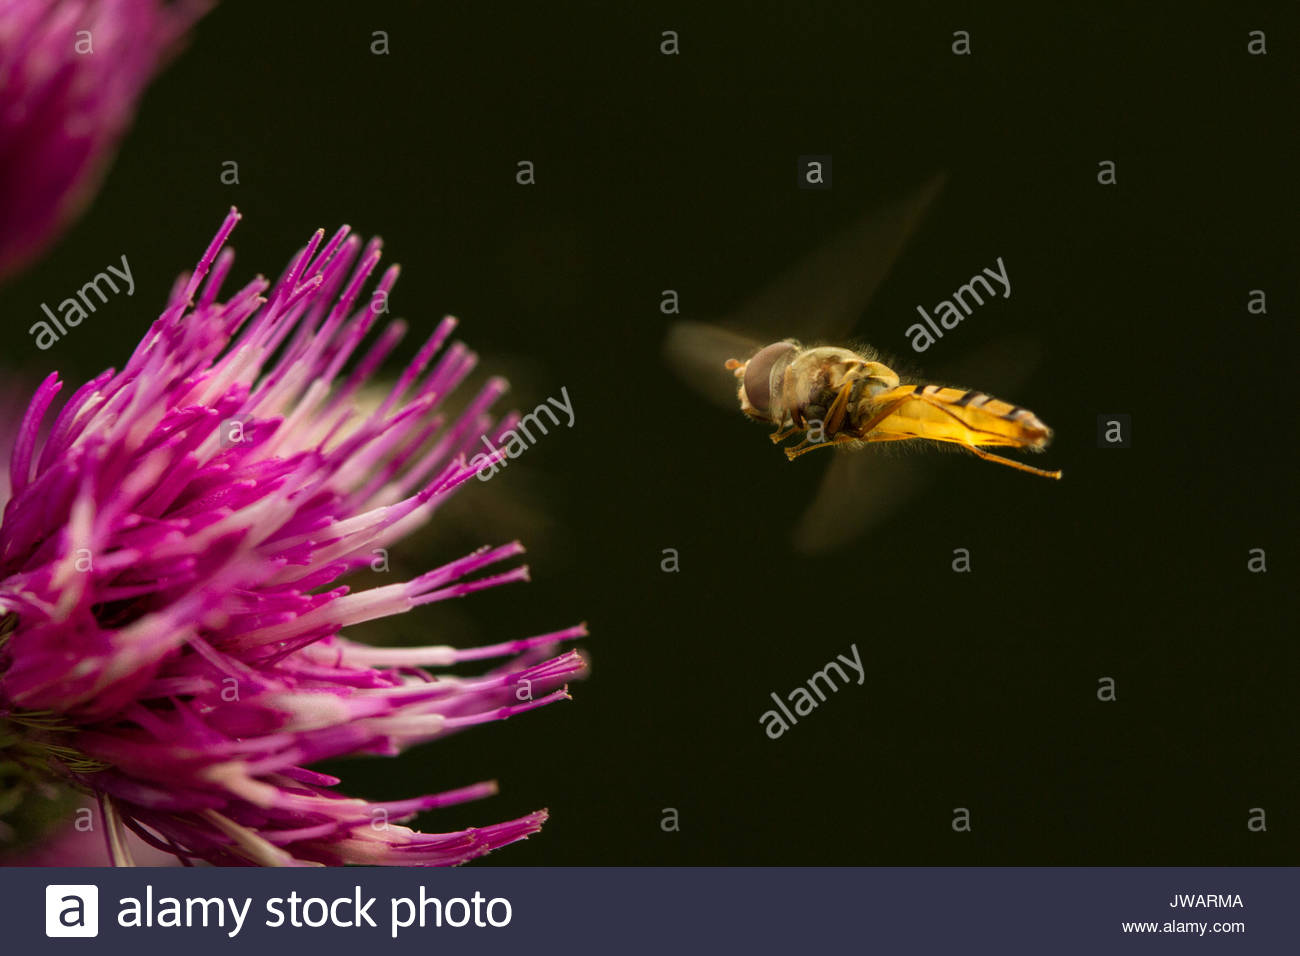 A sweat bee approaches a carduus flower. - Stock Image